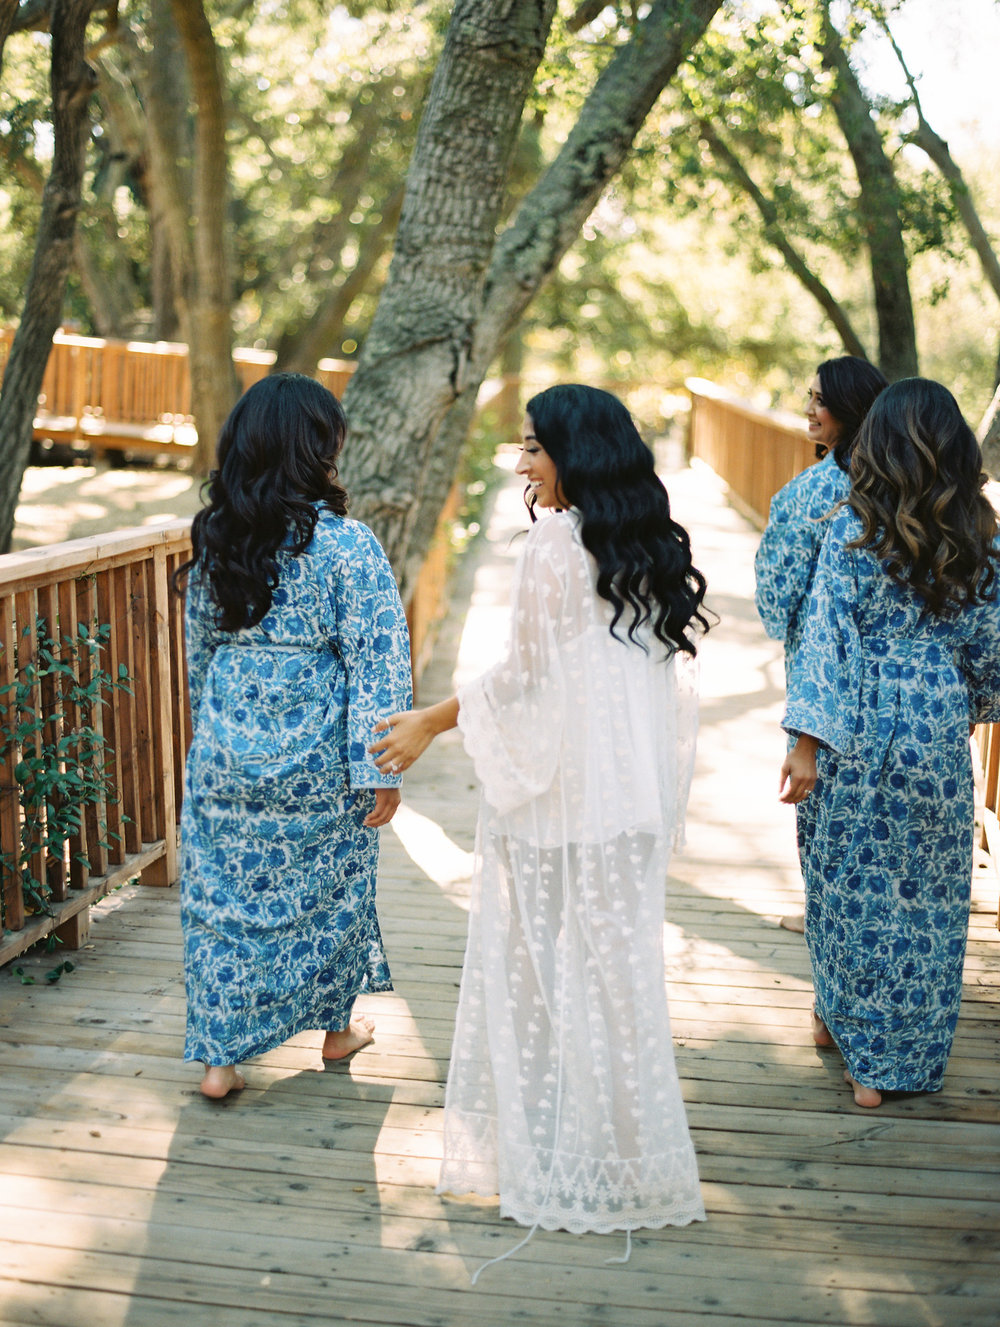 117-fine-art-film-kristopher-veronica-malibu-wedding-brumley-wells-X4.jpg